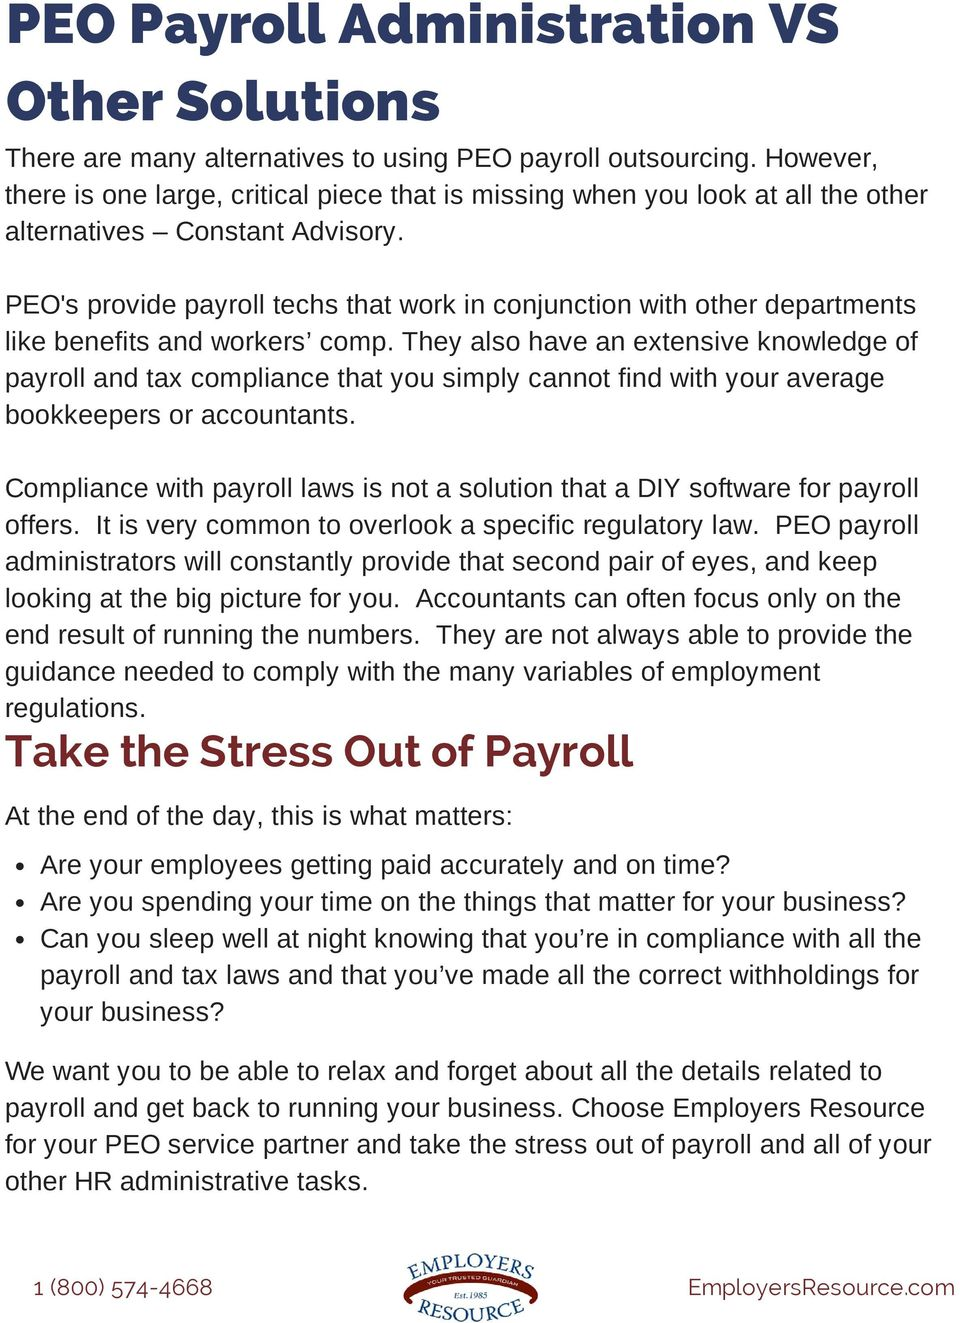 PEO's provide payroll techs that work in conjunction with other departments like benefits and workers comp.